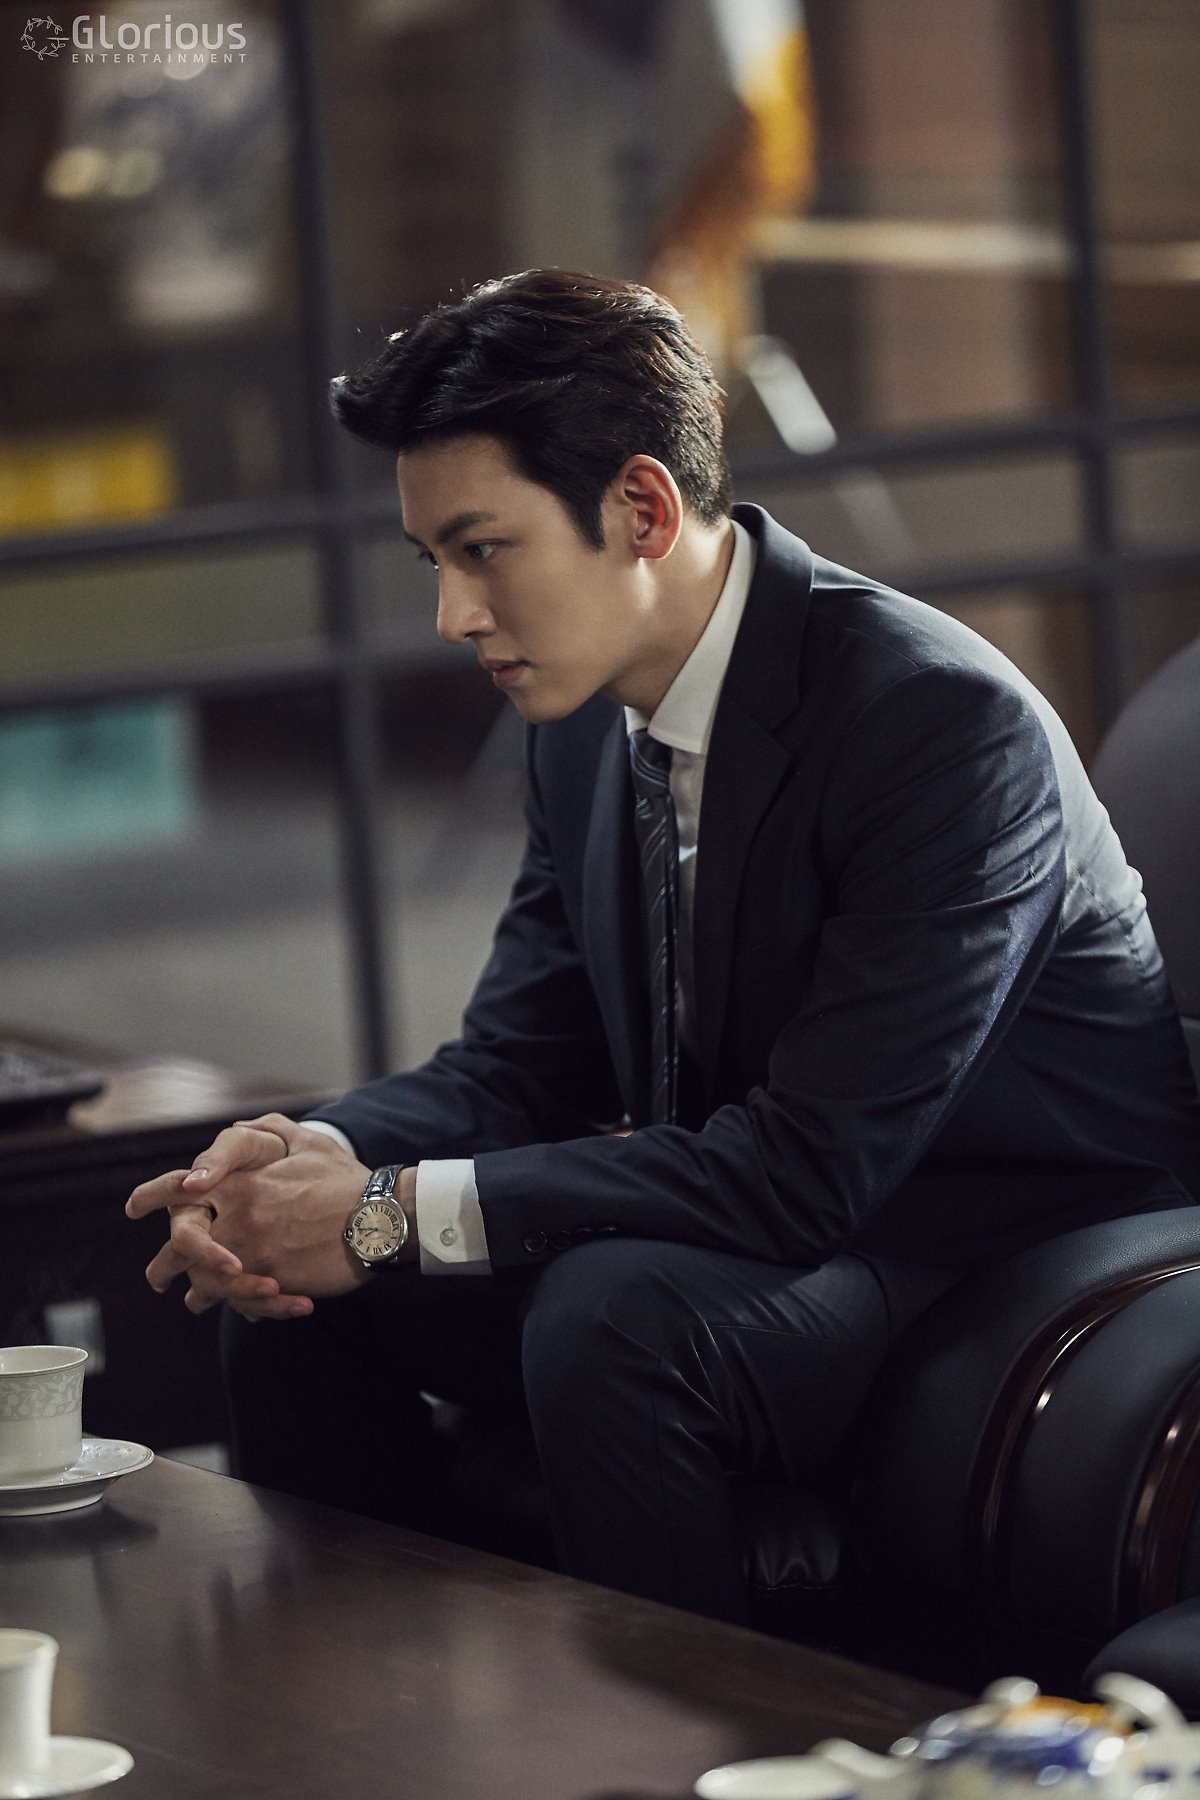 Drama Even More Behind Scenes Photos Of Ji Chang Wook In